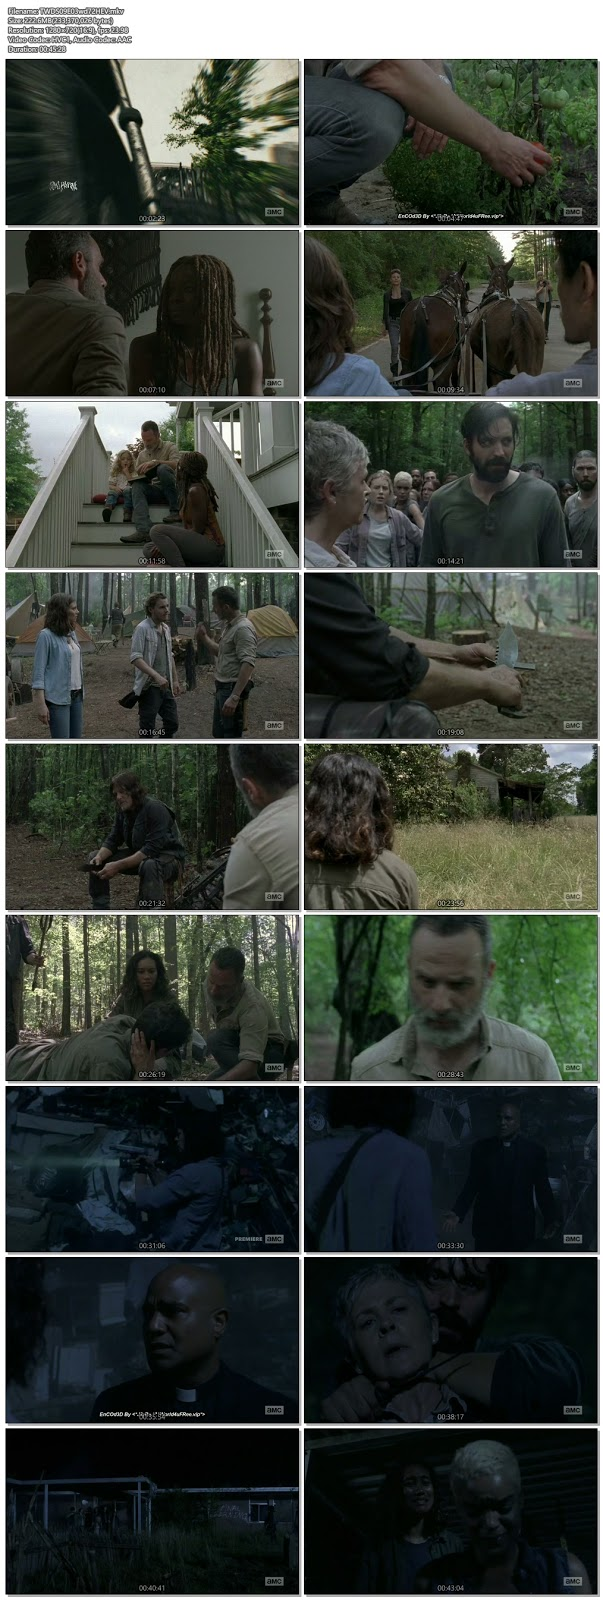 The Walking Dead S09 Episode 03 720p HDTV 200mb ESub x265 HEVC, hollwood tv series The walking dead 2018 720p hdtv tv show hevc x265 hdrip 250mb 270mb free download or watch online at world4ufree.vip